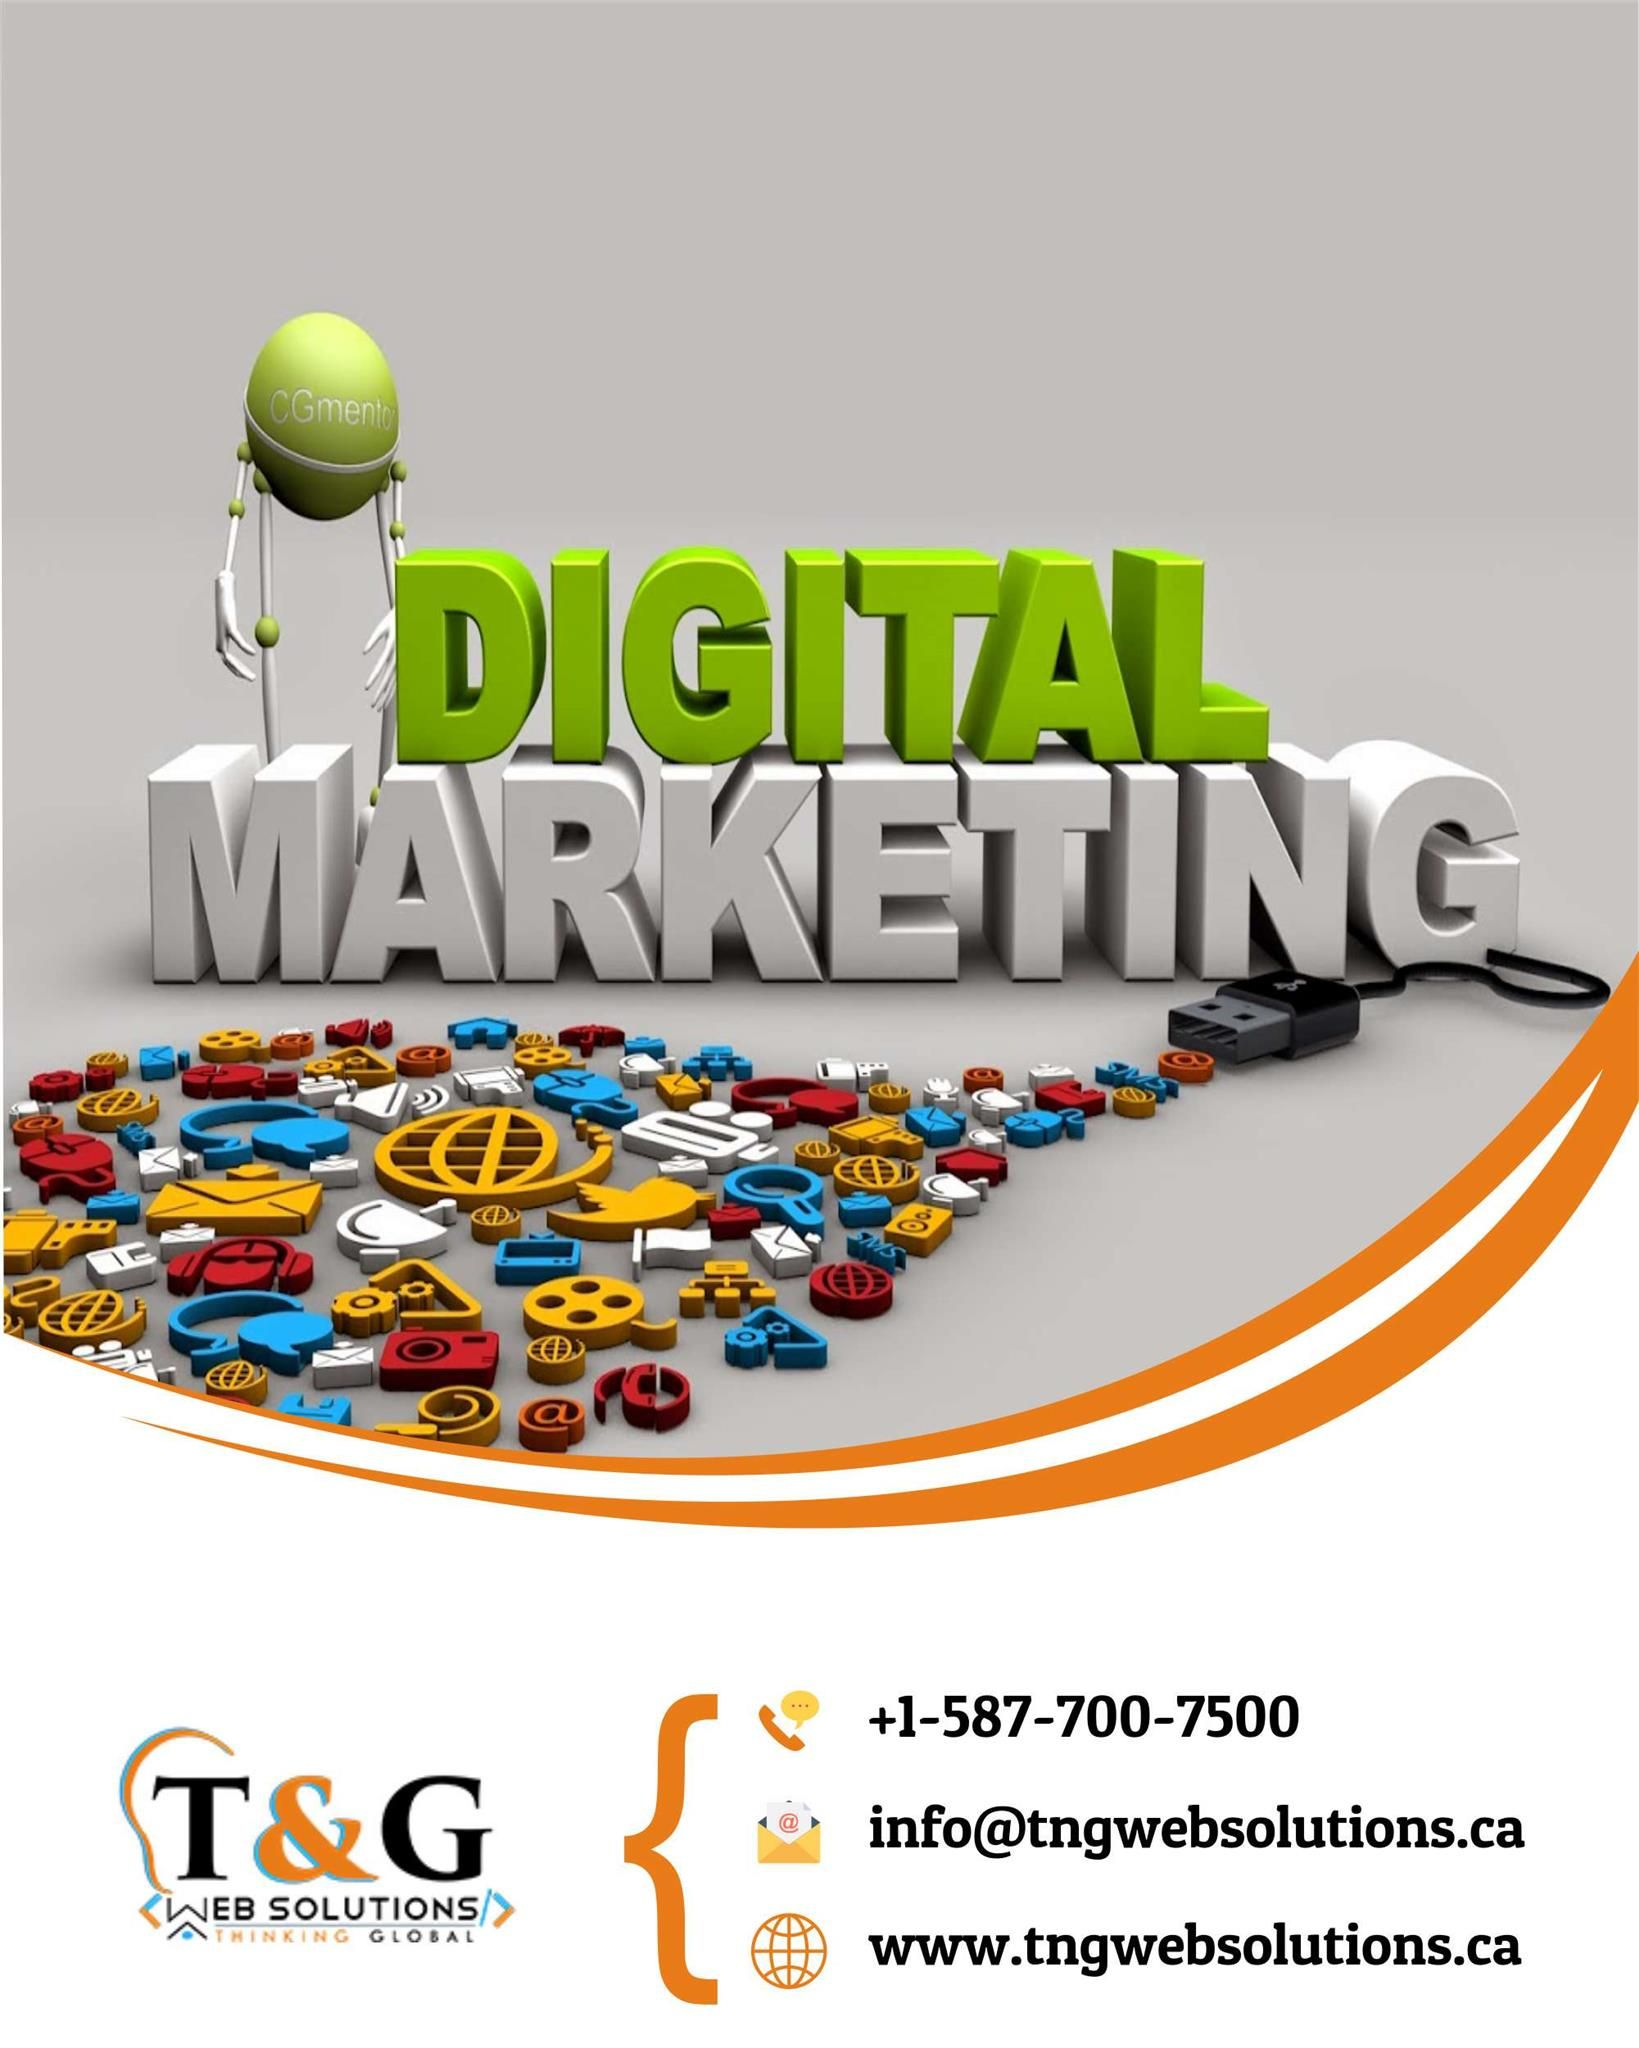 EO Plus is an awardwinning digital marketing agency with